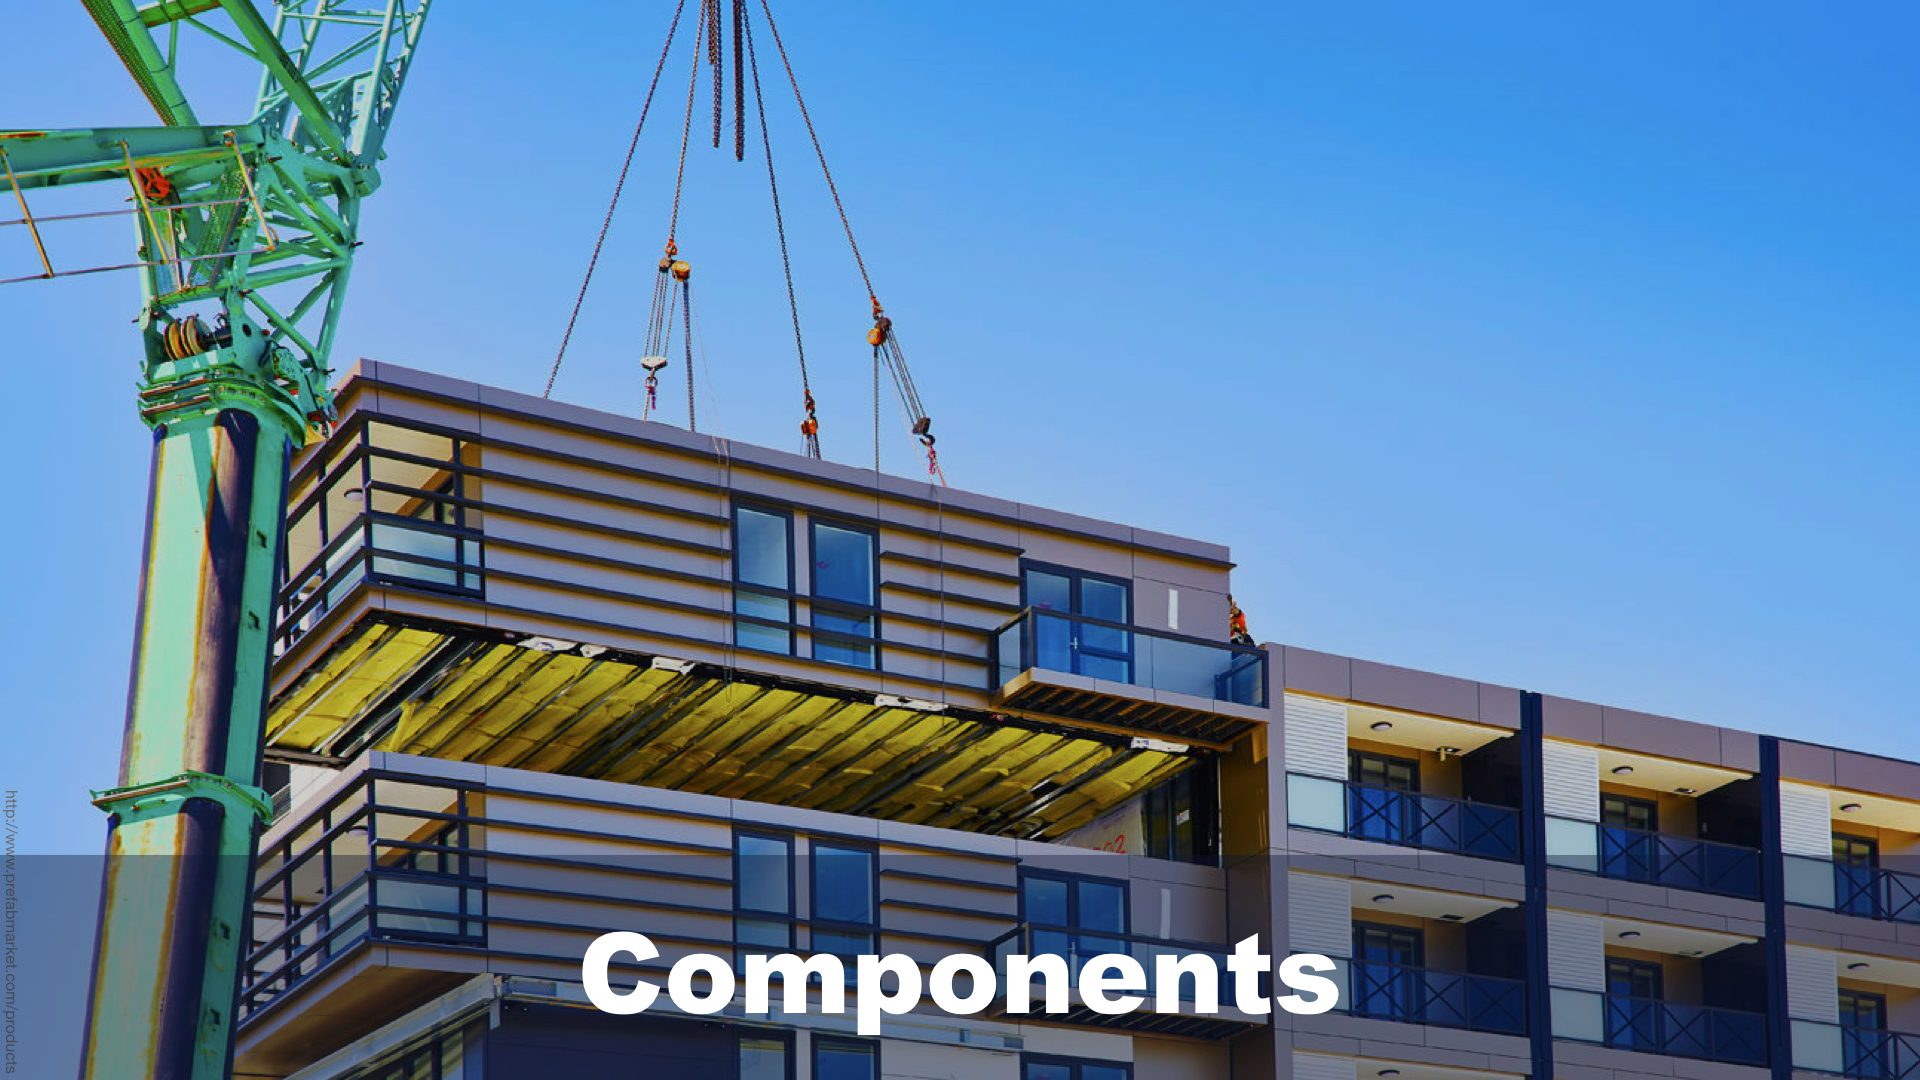 Components in React compared to Prefabricated Units in High-rise construction